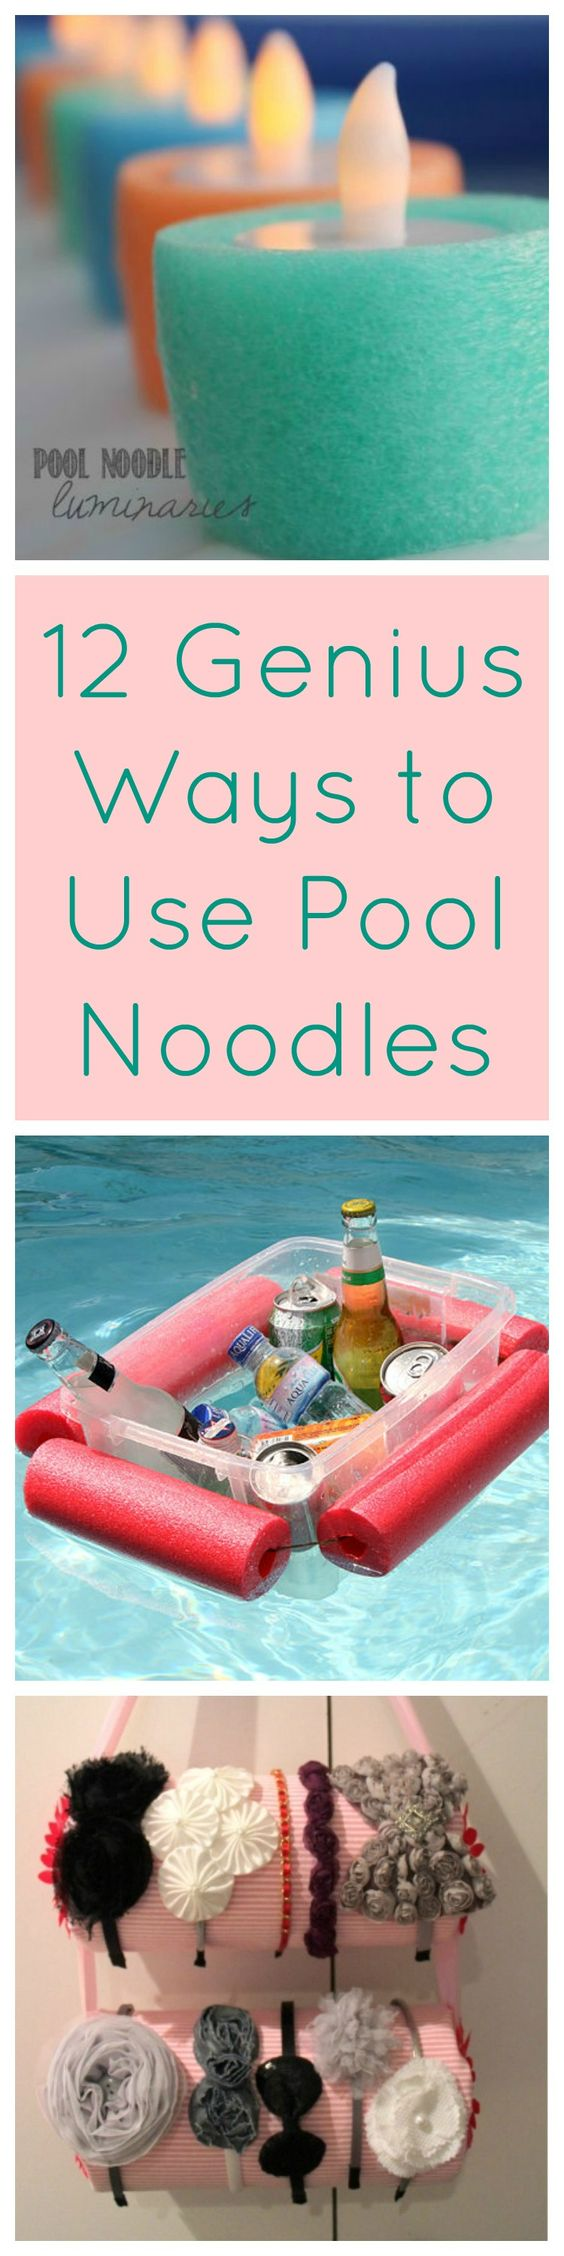 12 Ways Pool Noodles Are Totally Awesome Outside the Pool